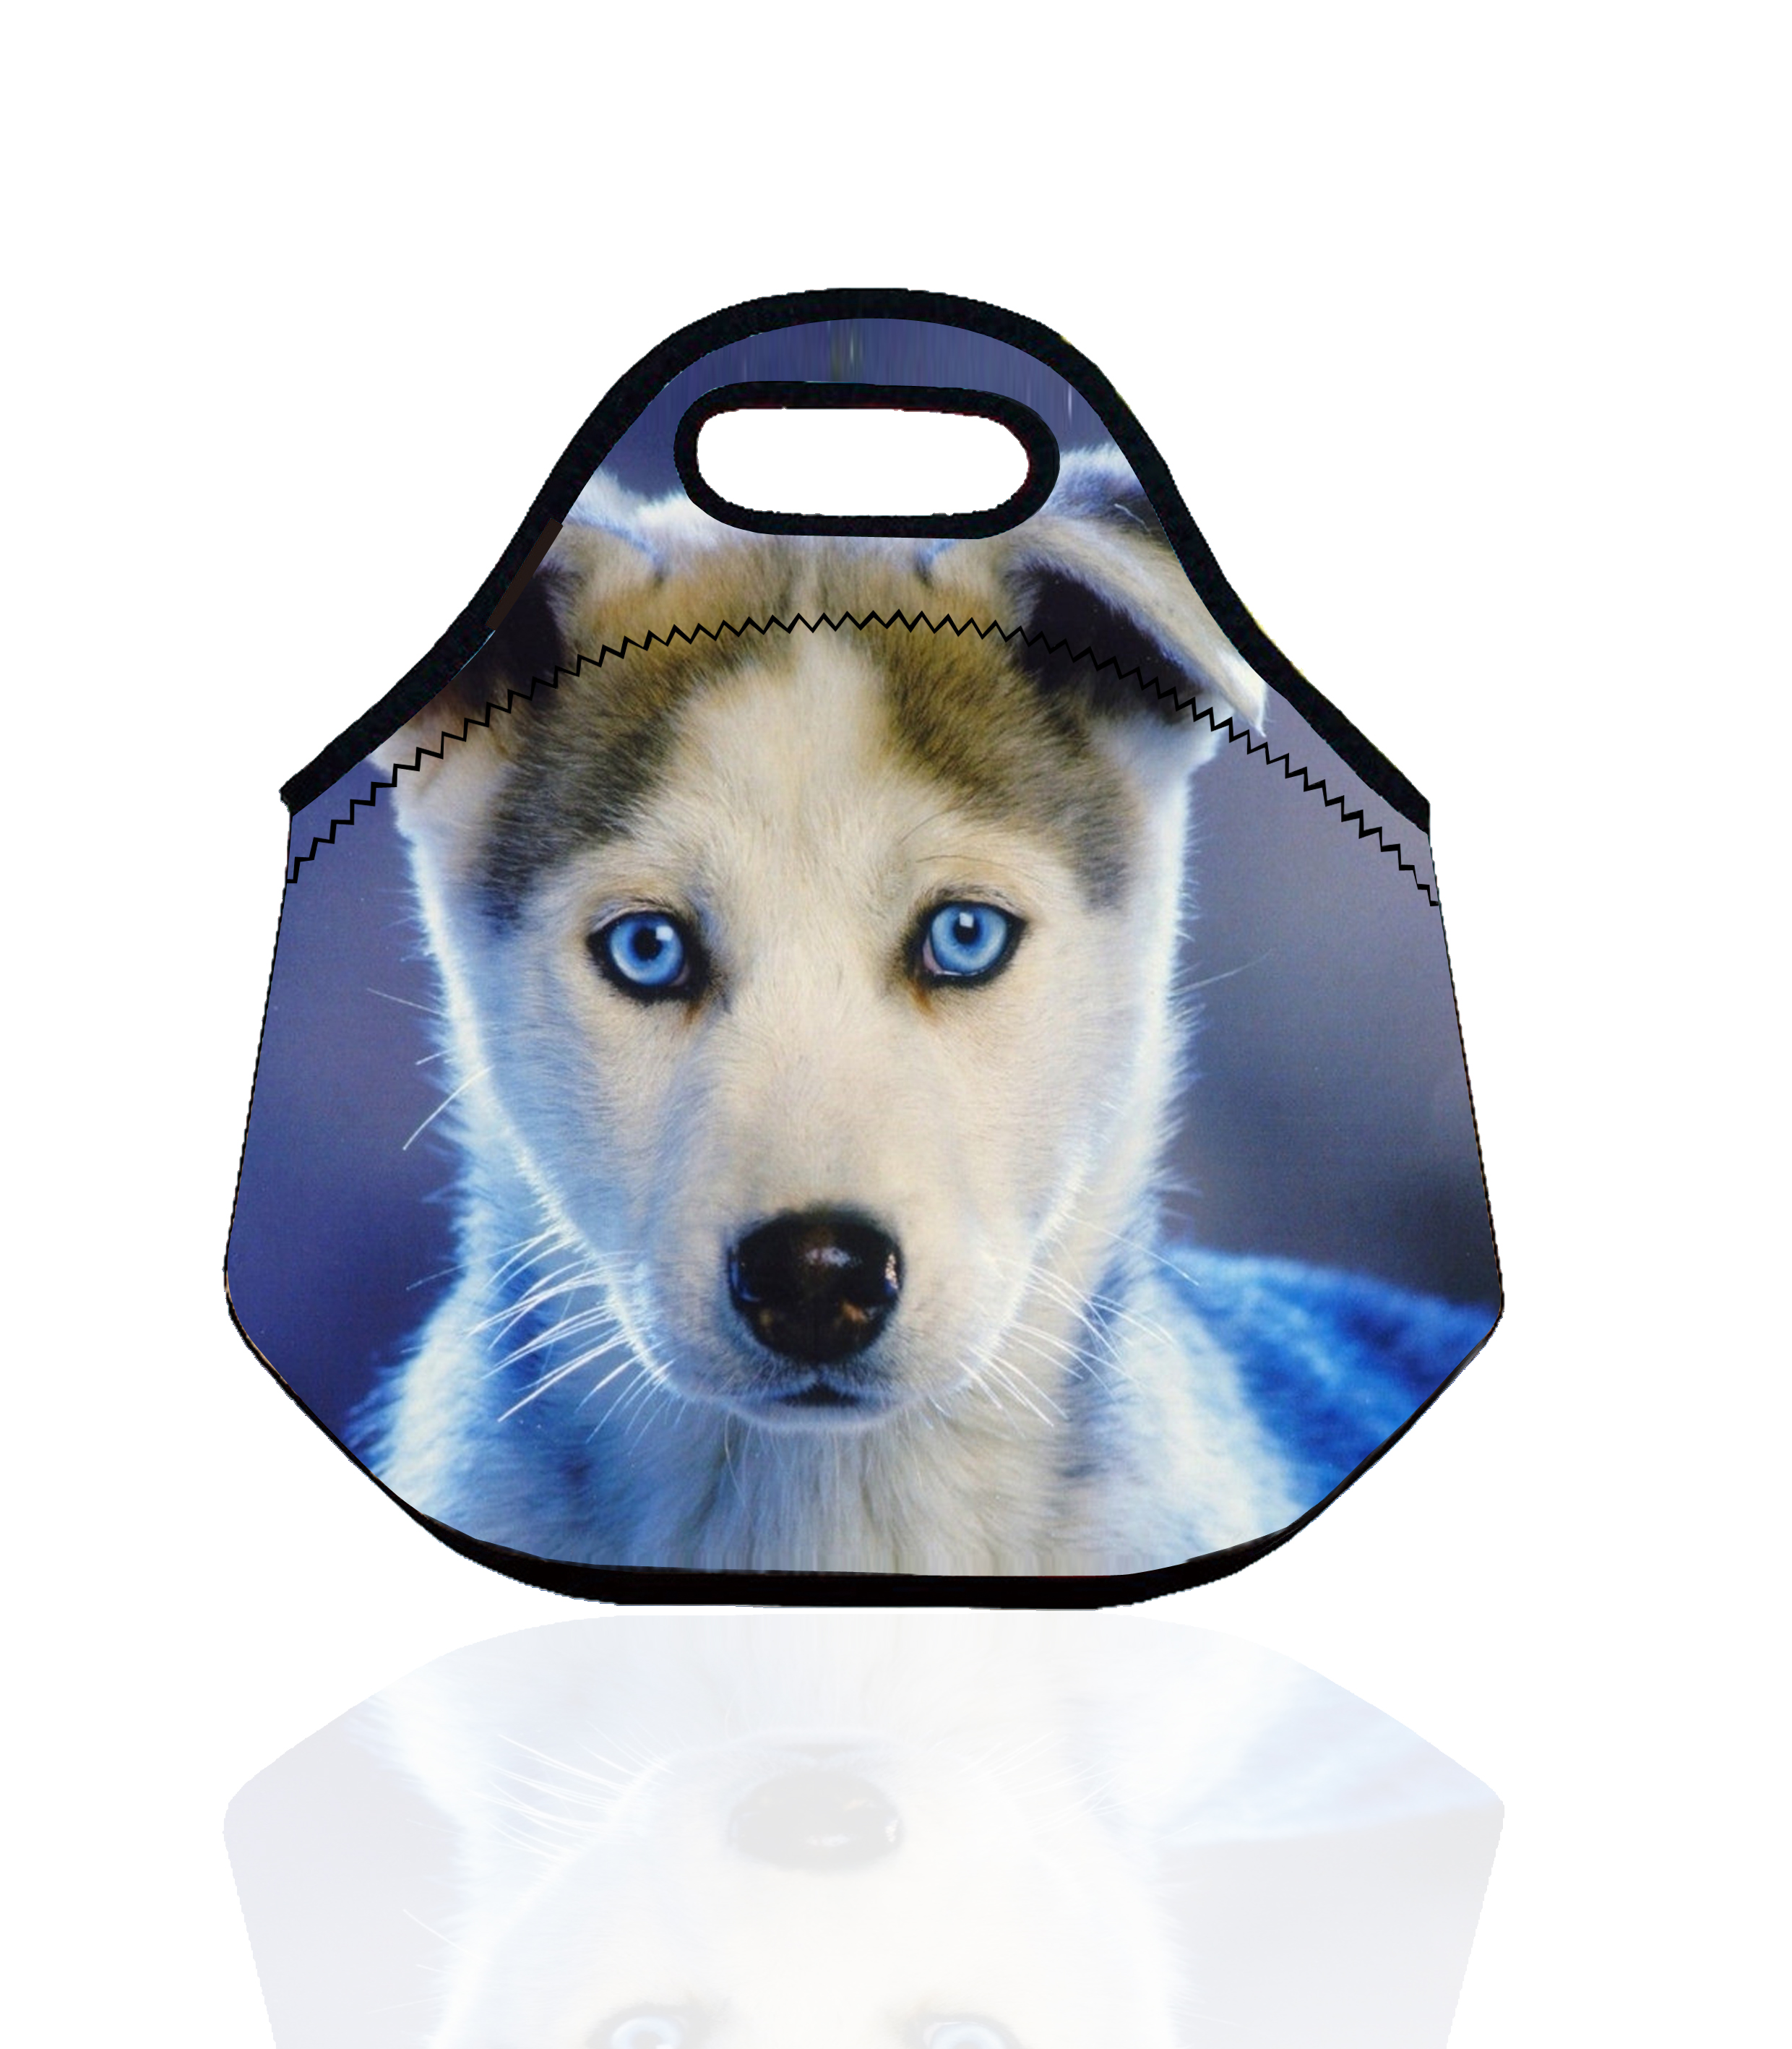 Dog with Blue Eye Portable Insulated Storage Bag Thermal Food Picnic Lunch Bags for Women kids Men Lunch Box Tote bolsa termica